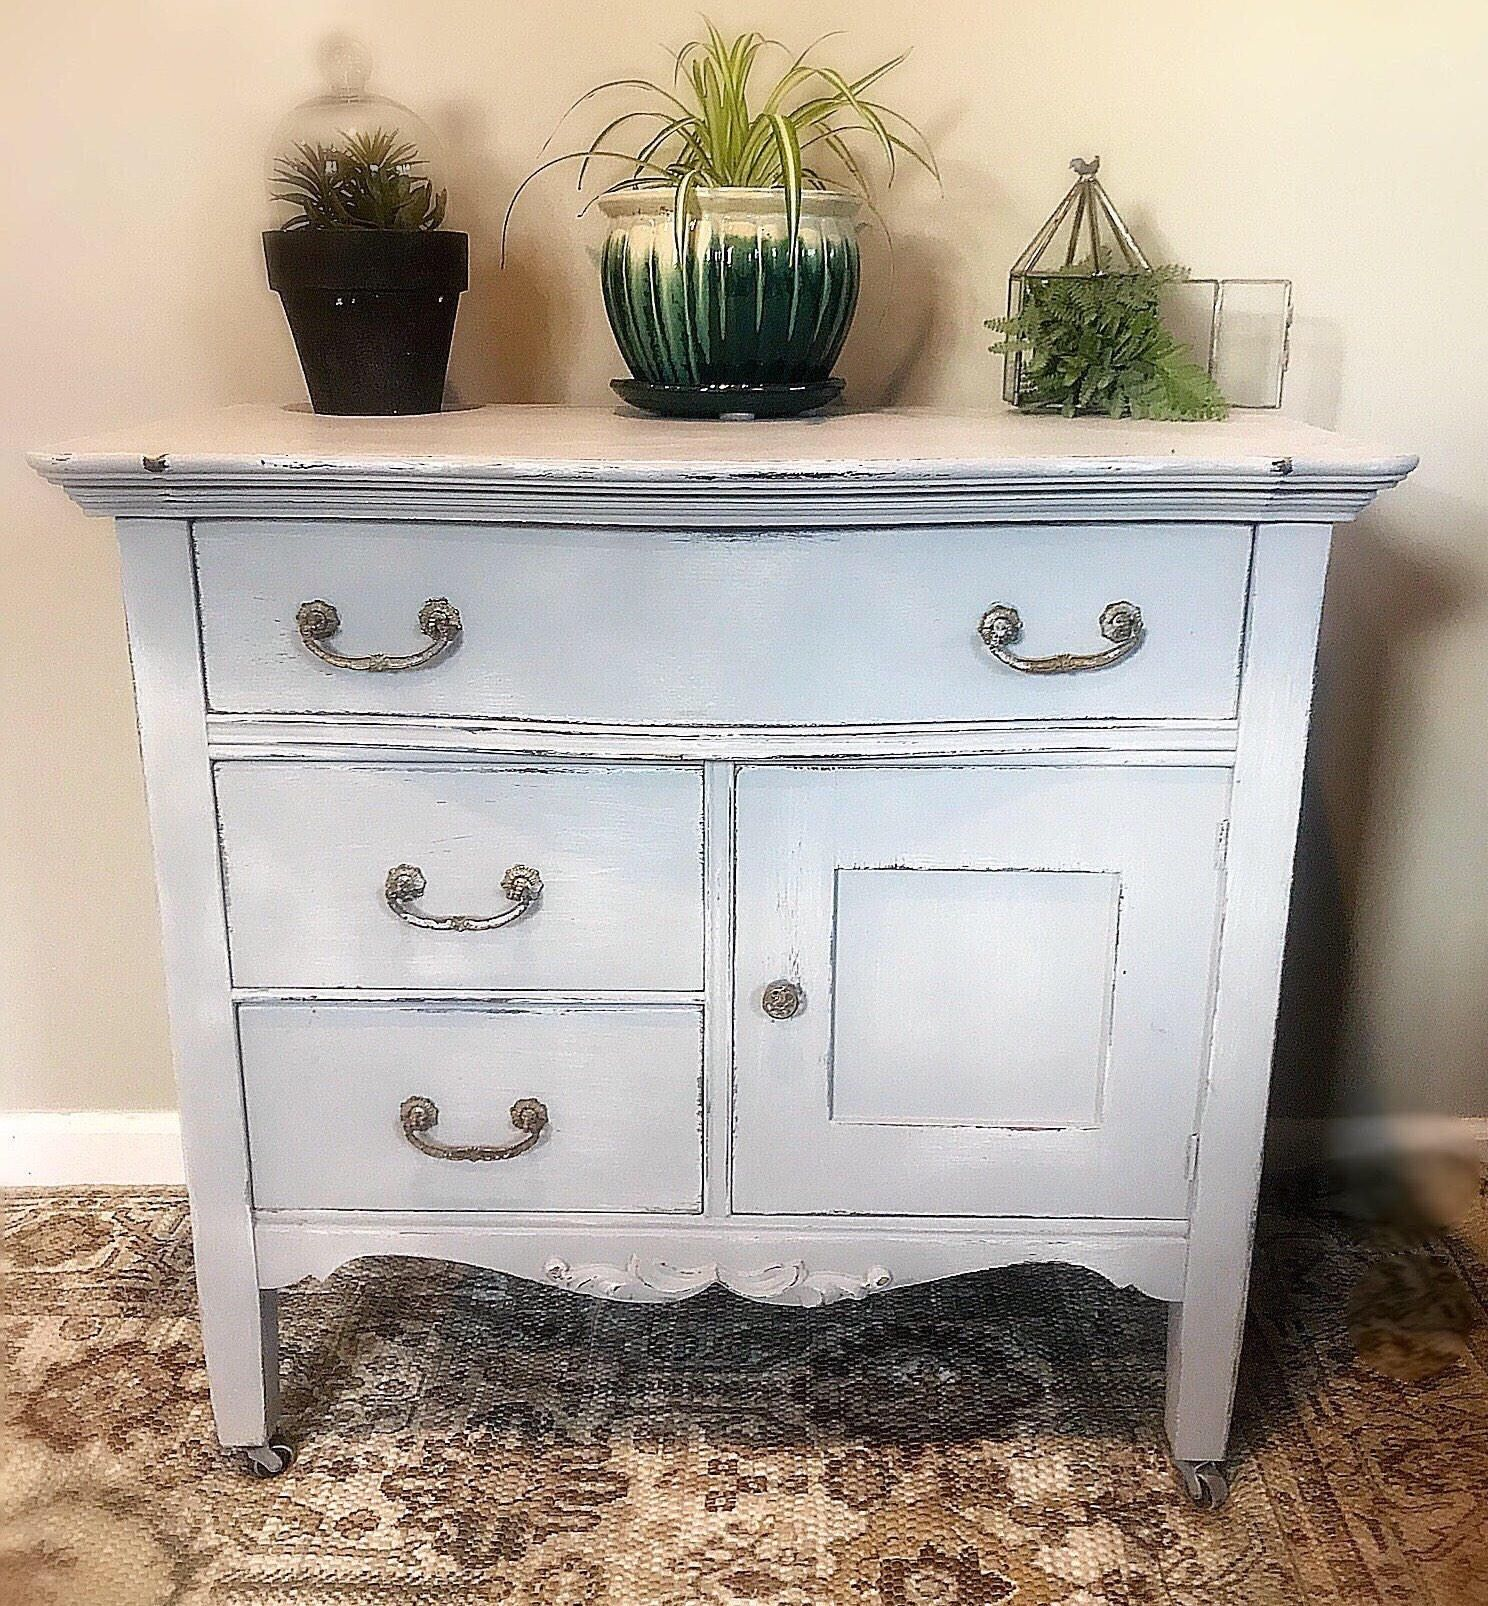 Gorgeous Light Gray Vintage Dresser /Baby Changing Table Antique Lowboy  Chest Of Drawers